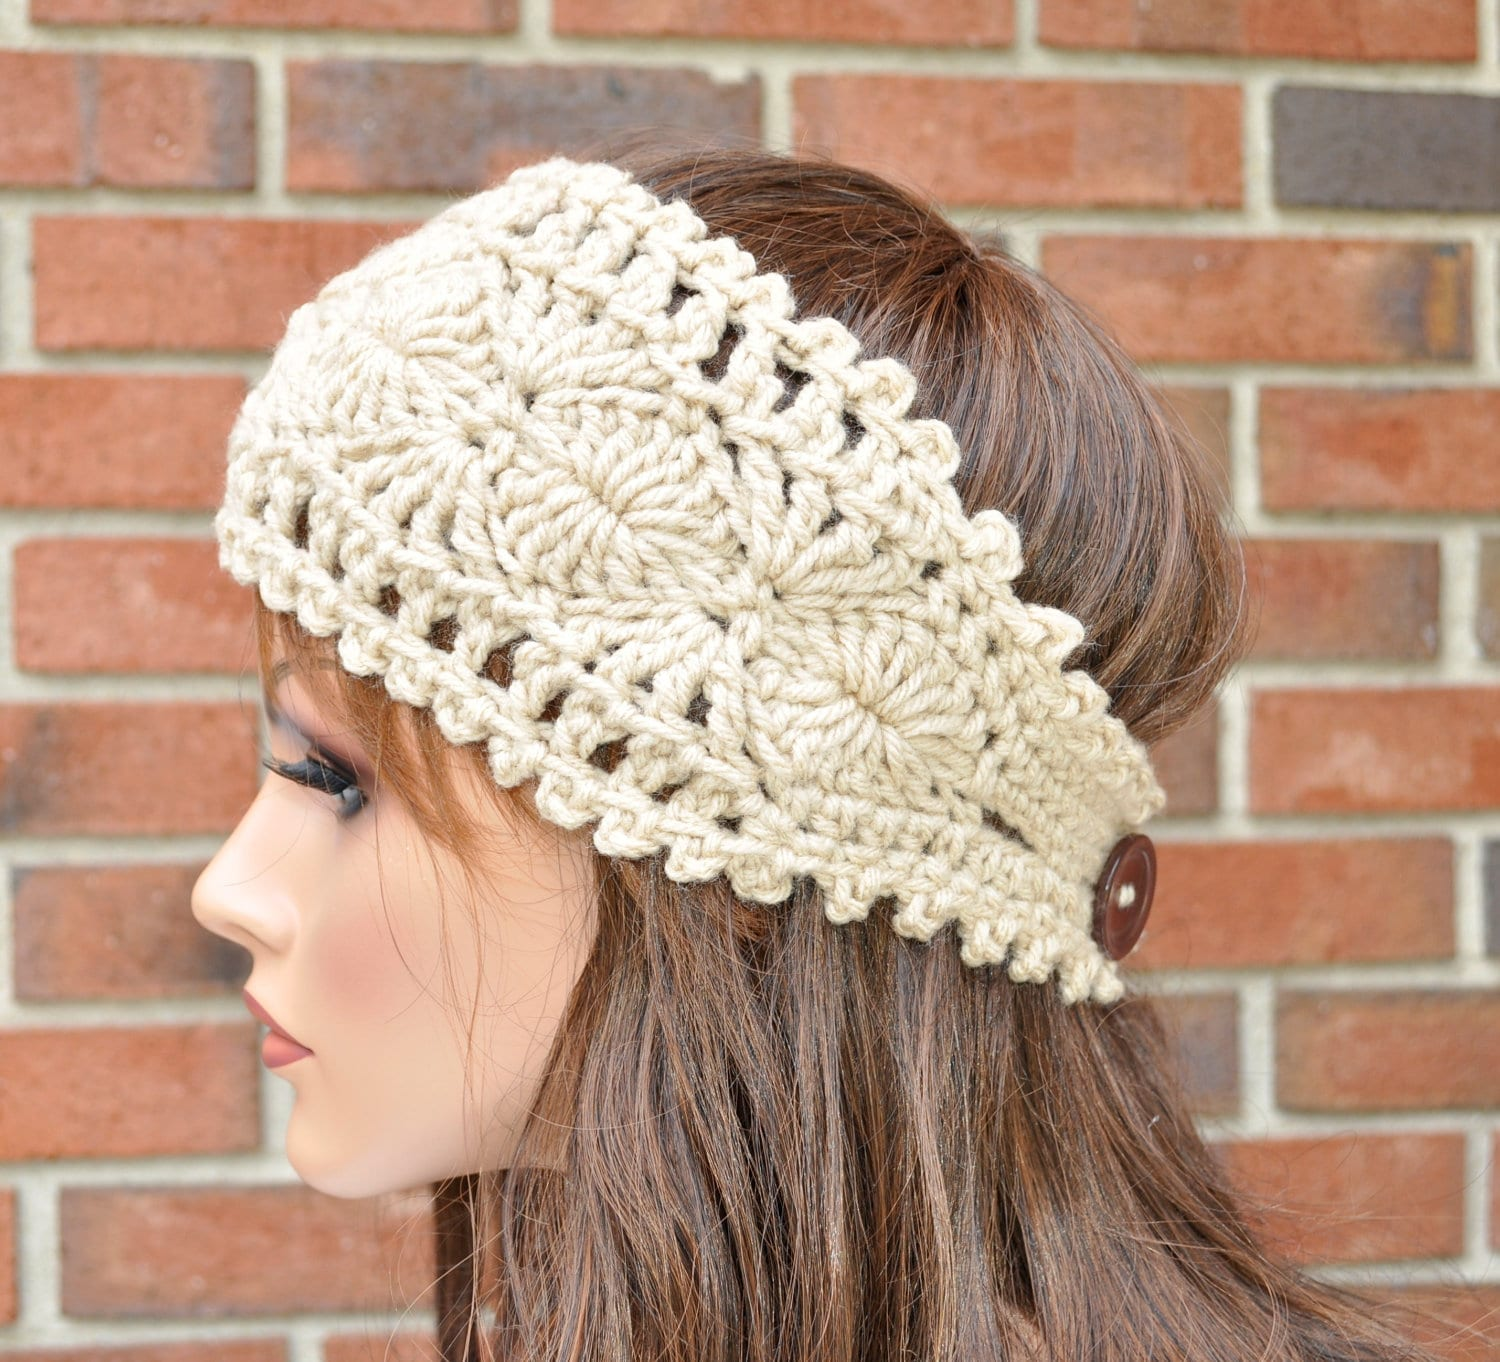 Free Crochet Pattern Headband Ear Warmer : Crochet Ear Warmer Handmade Accessory Womens Crochet Headband